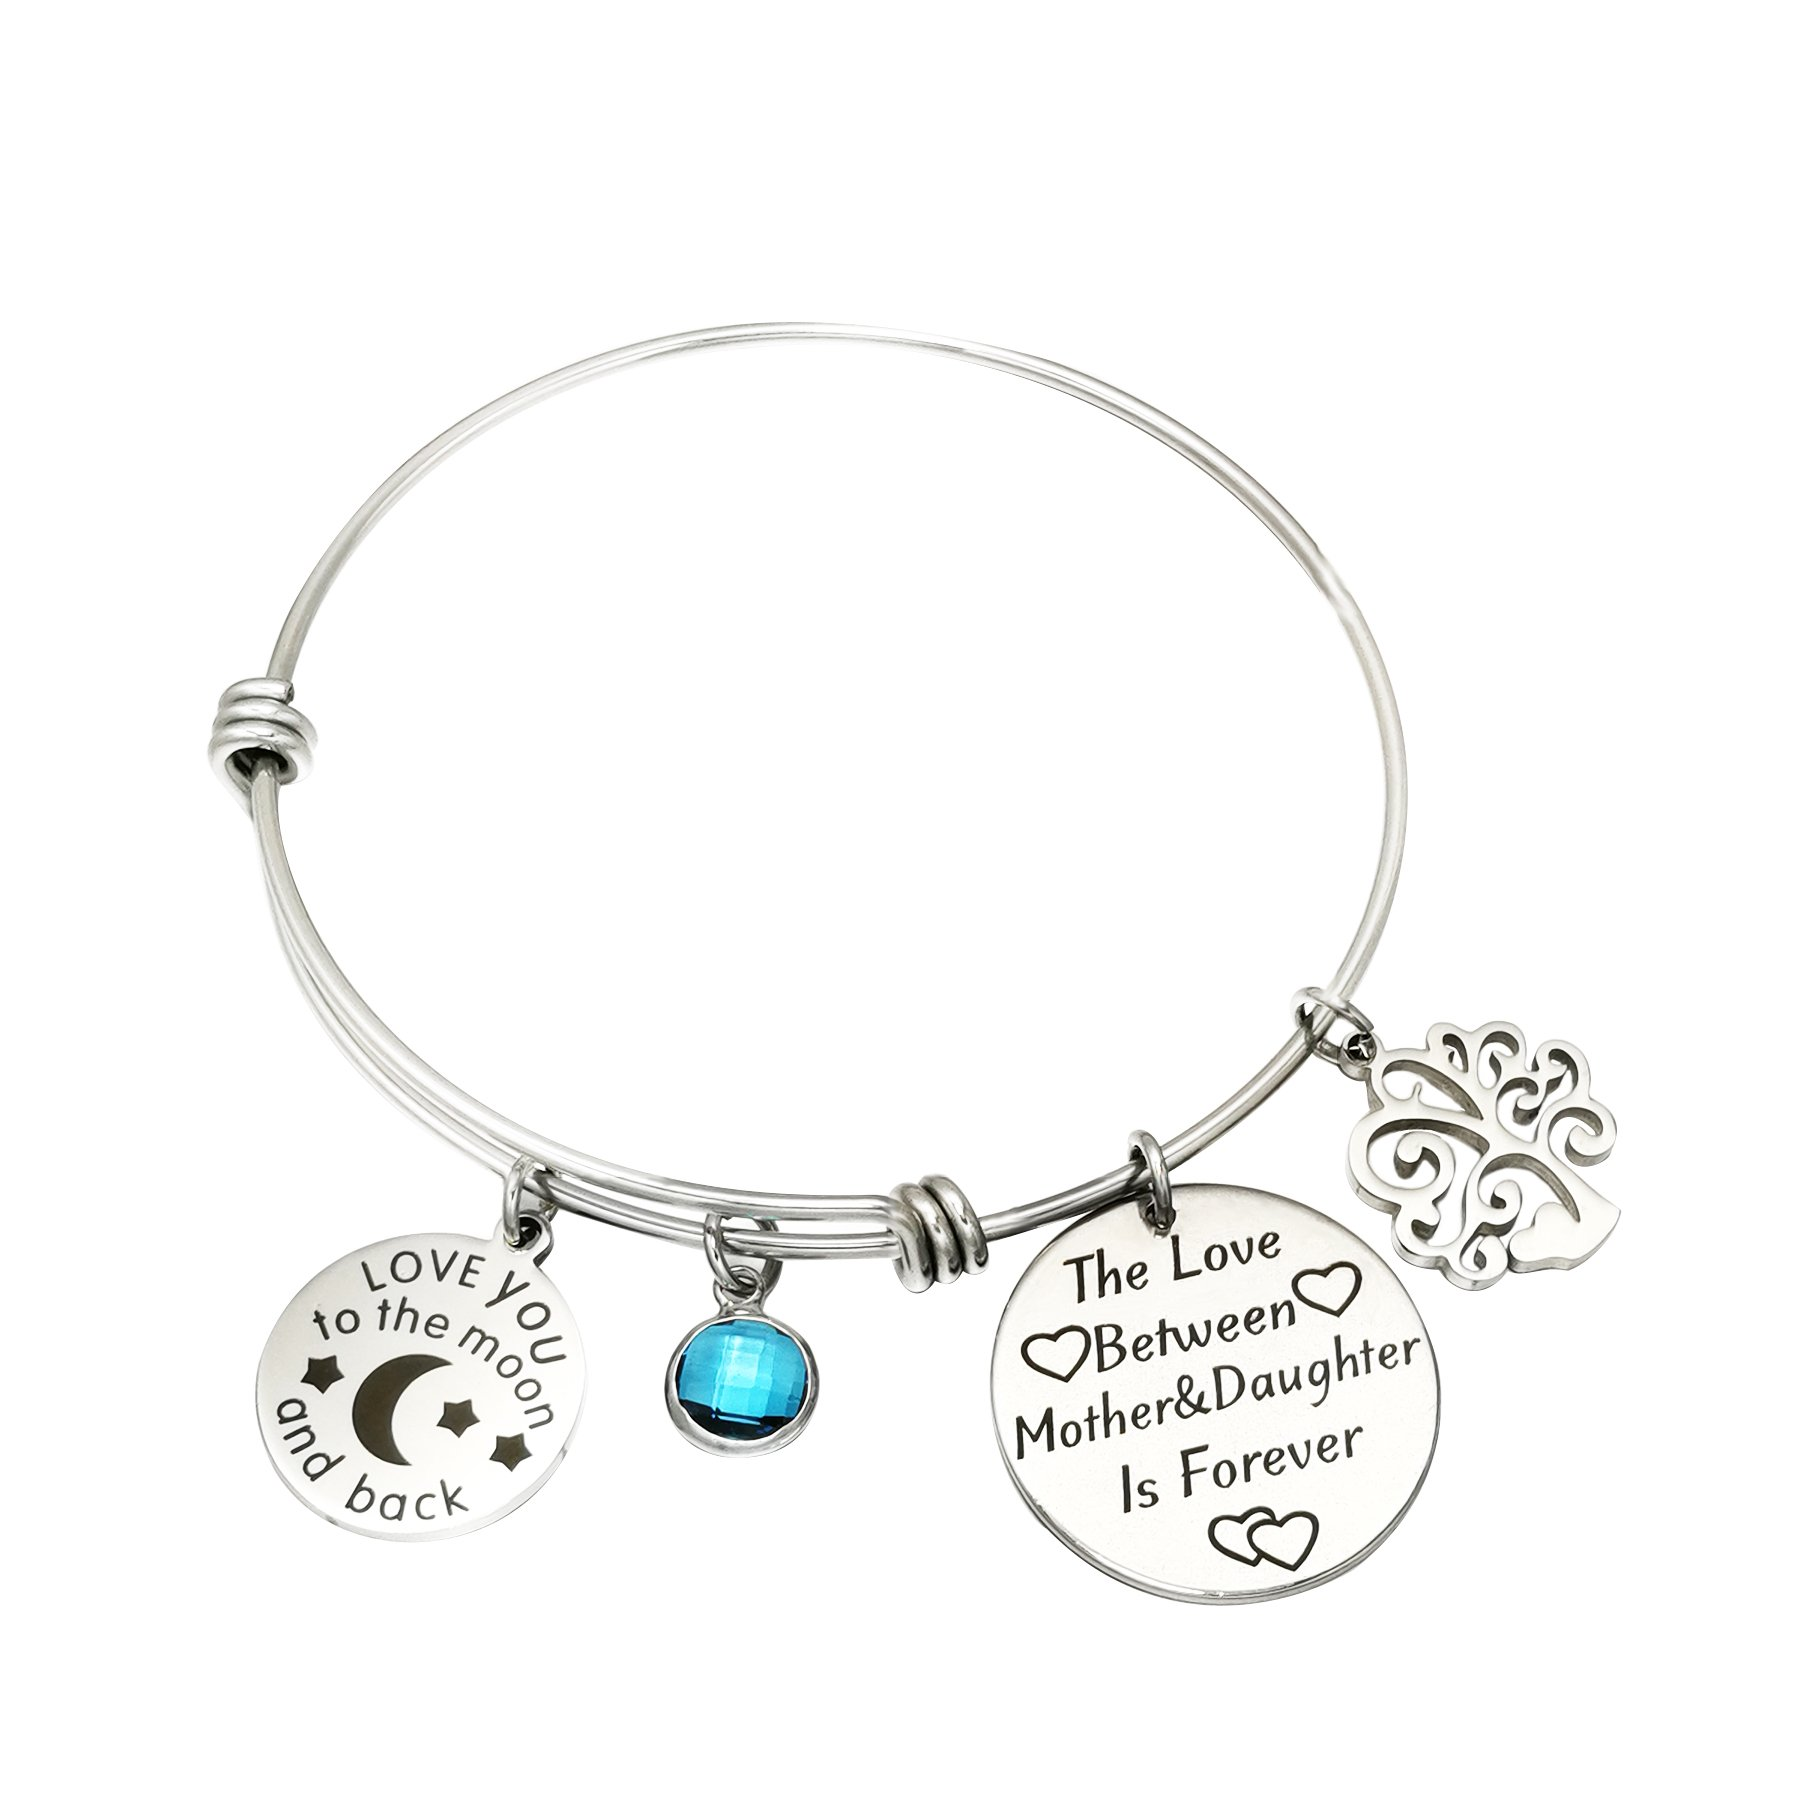 PORPI-JOJO I Love You to The Moon and Back Mom Bangle Bracelets Mothers Day Gifts The Love Between Mother&Daughter is Forever Stainless Steel 4 Style (The Love Between Mother&Daughter is Forever)